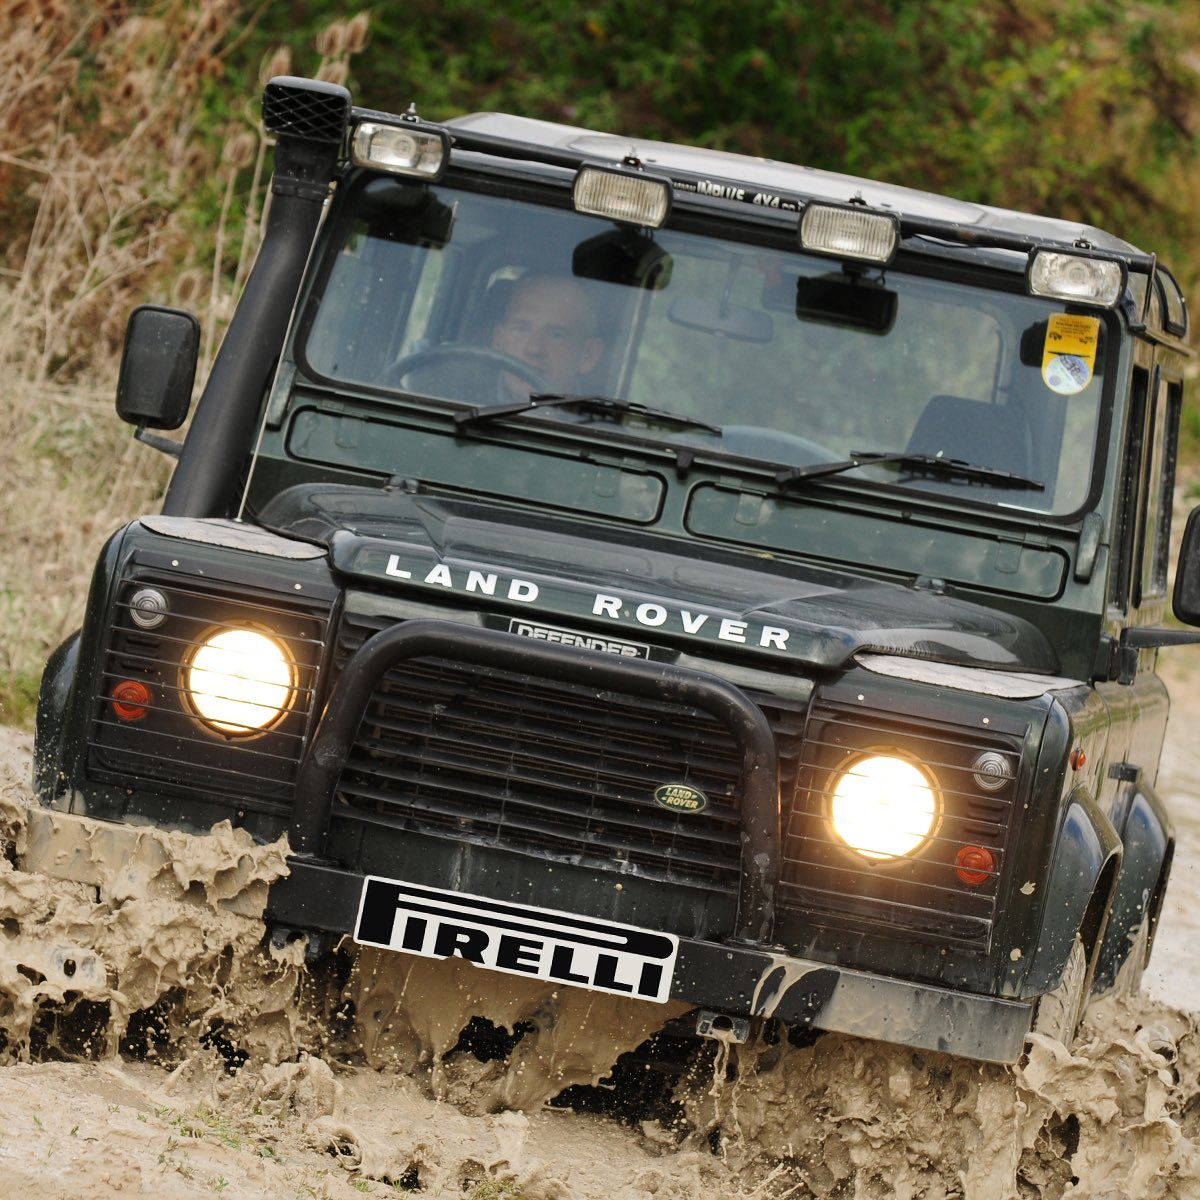 Our 4x4 Off-Road Driving Centre re-opened at the weekend. Guests pushed our Land Rovers & themselves to the limit whilst getting very muddy in the process!  We offer 4x4 Off-Road Driving Experiences for individuals & groups, check them out on our website: https://t.co/F6PfFHuzAQ https://t.co/RbISWQPcgX